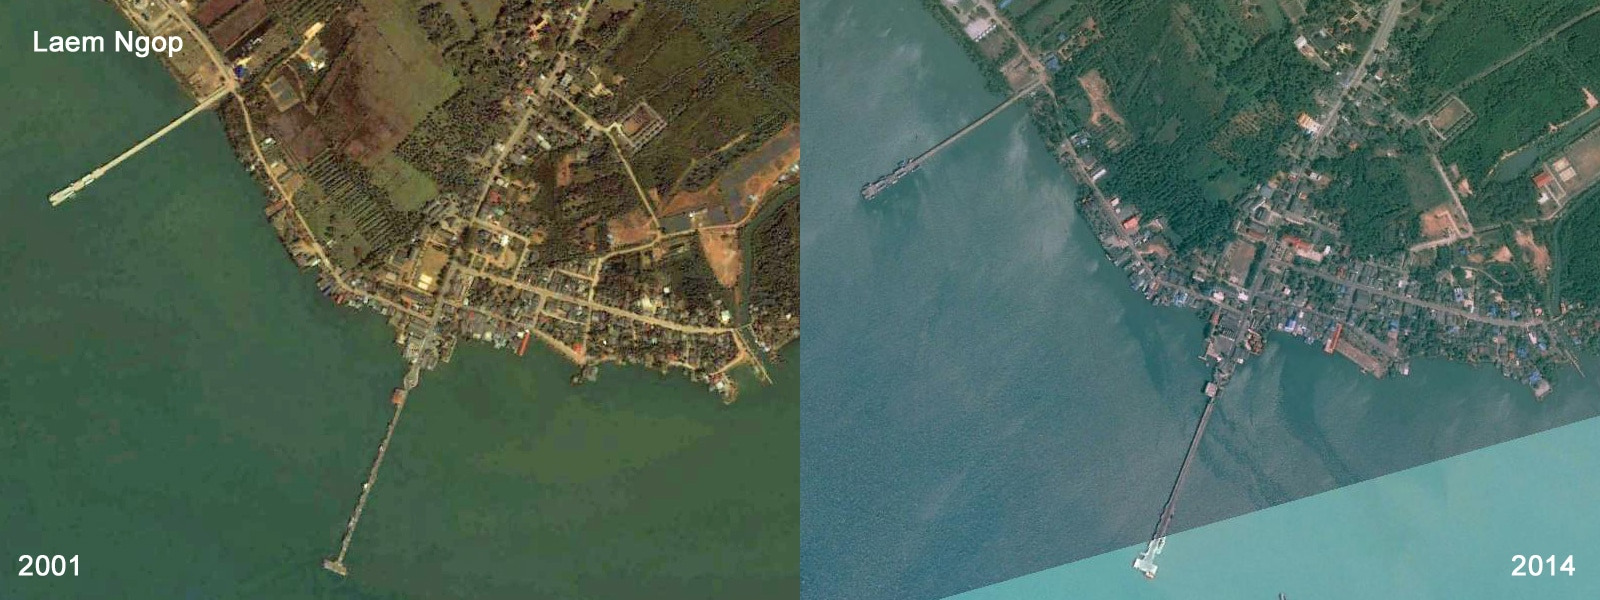 laemNgop comparison - Koh Chang